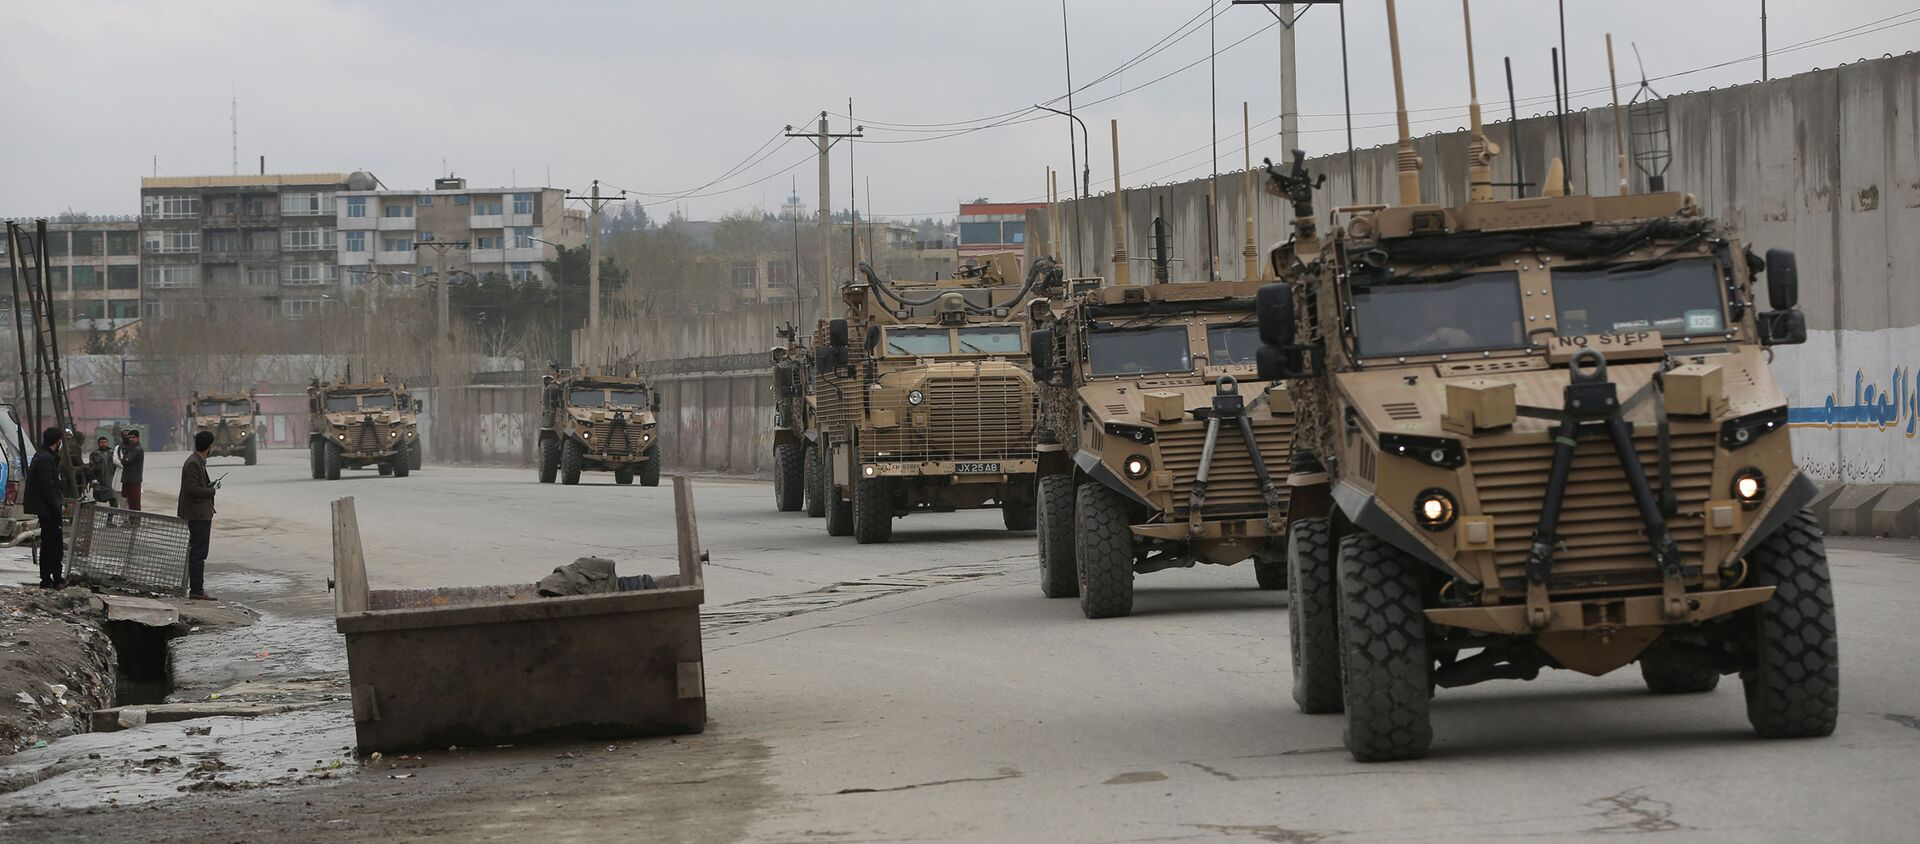 In this file photo dated Wednesday, March 25, 2020, British troops with NATO-led Resolute Support Mission forces travel, in Kabul, Afghanistan. Dozens of former military commanders are calling on the U.K. government to relocate more of the Afghans who worked with British troops over the last 20 years, arguing that they are likely to be murdered by the Taliban as foreign forces pull out. Retired Gen. Richard Dannatt, the former chief of the General Staff, and other senior leaders of the campaign in Afghanistan, are urging the government to expand its relocation program to include interpreters and other support staff who were dismissed for minor infractions.  - Sputnik International, 1920, 14.08.2021